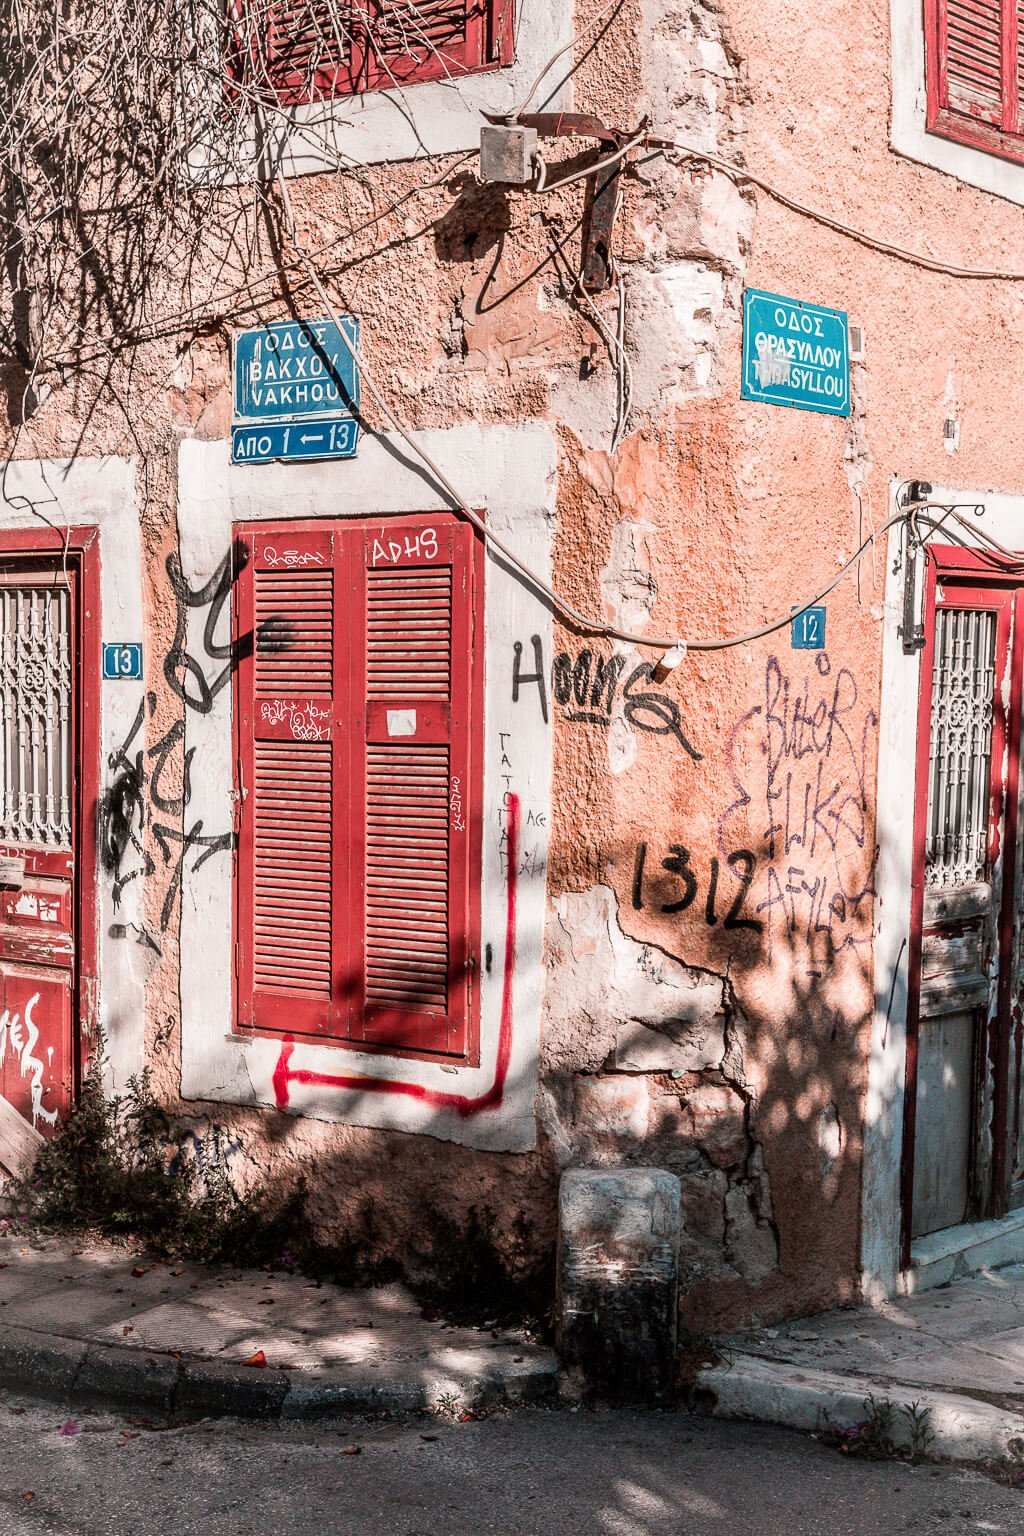 Athens, Greece - Photography guide to the city